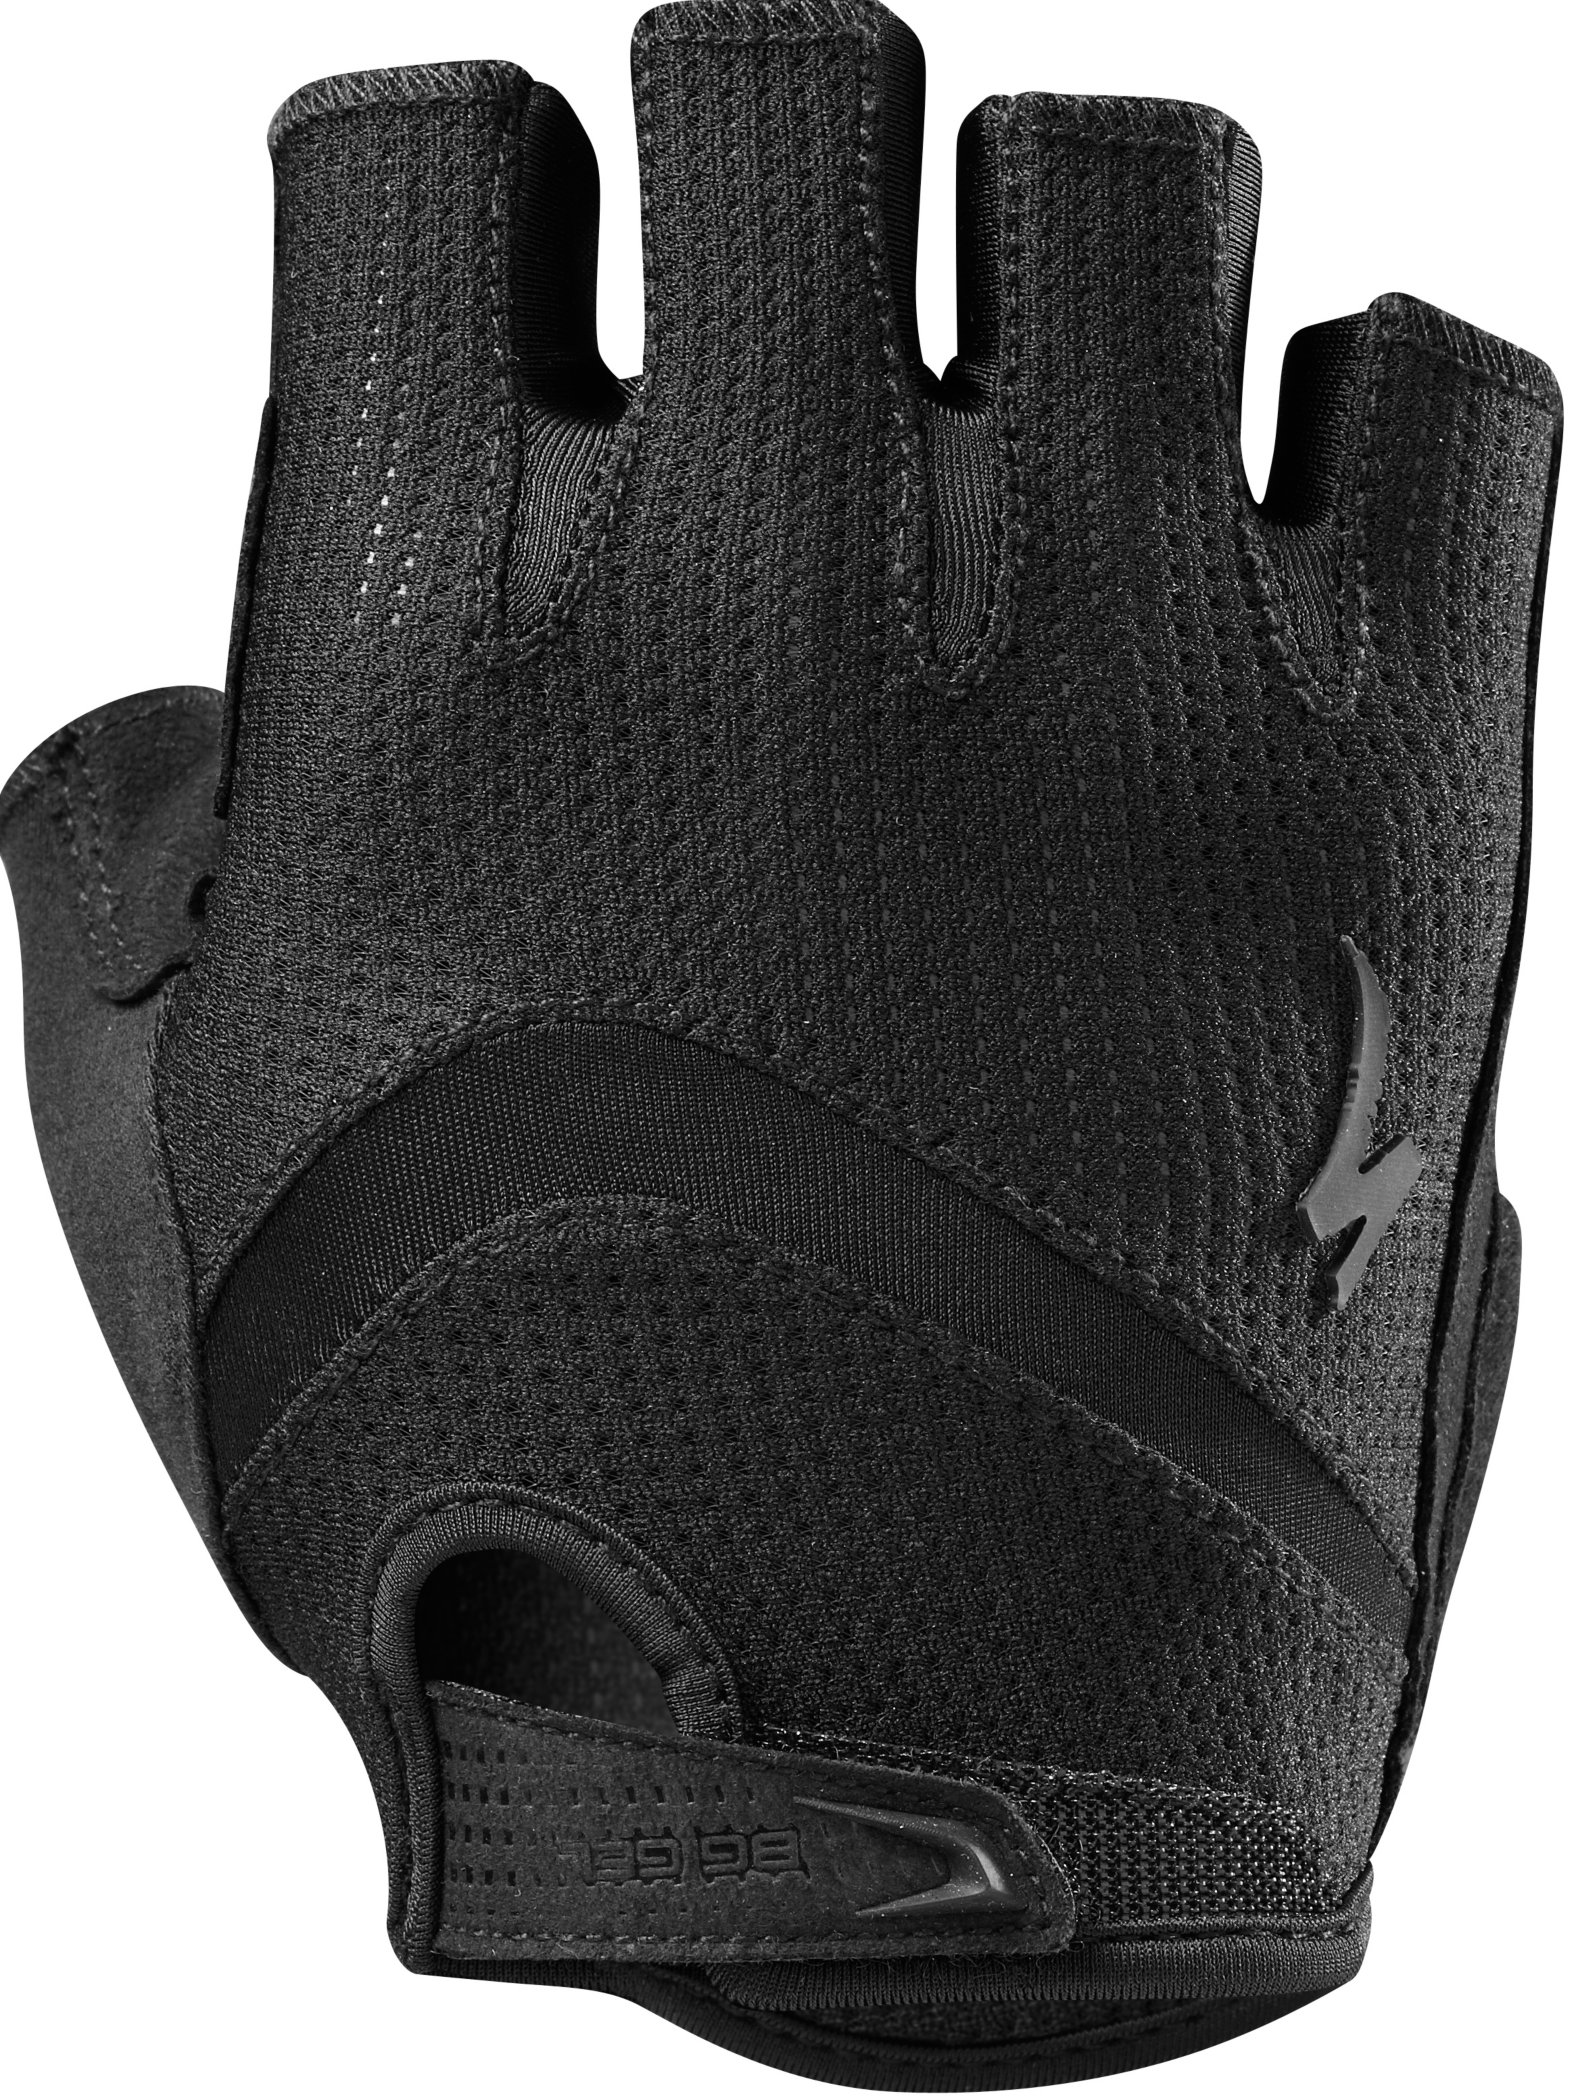 SPECIALIZED BG GEL GLOVE SF BLK/BLK L - Alpha Bikes